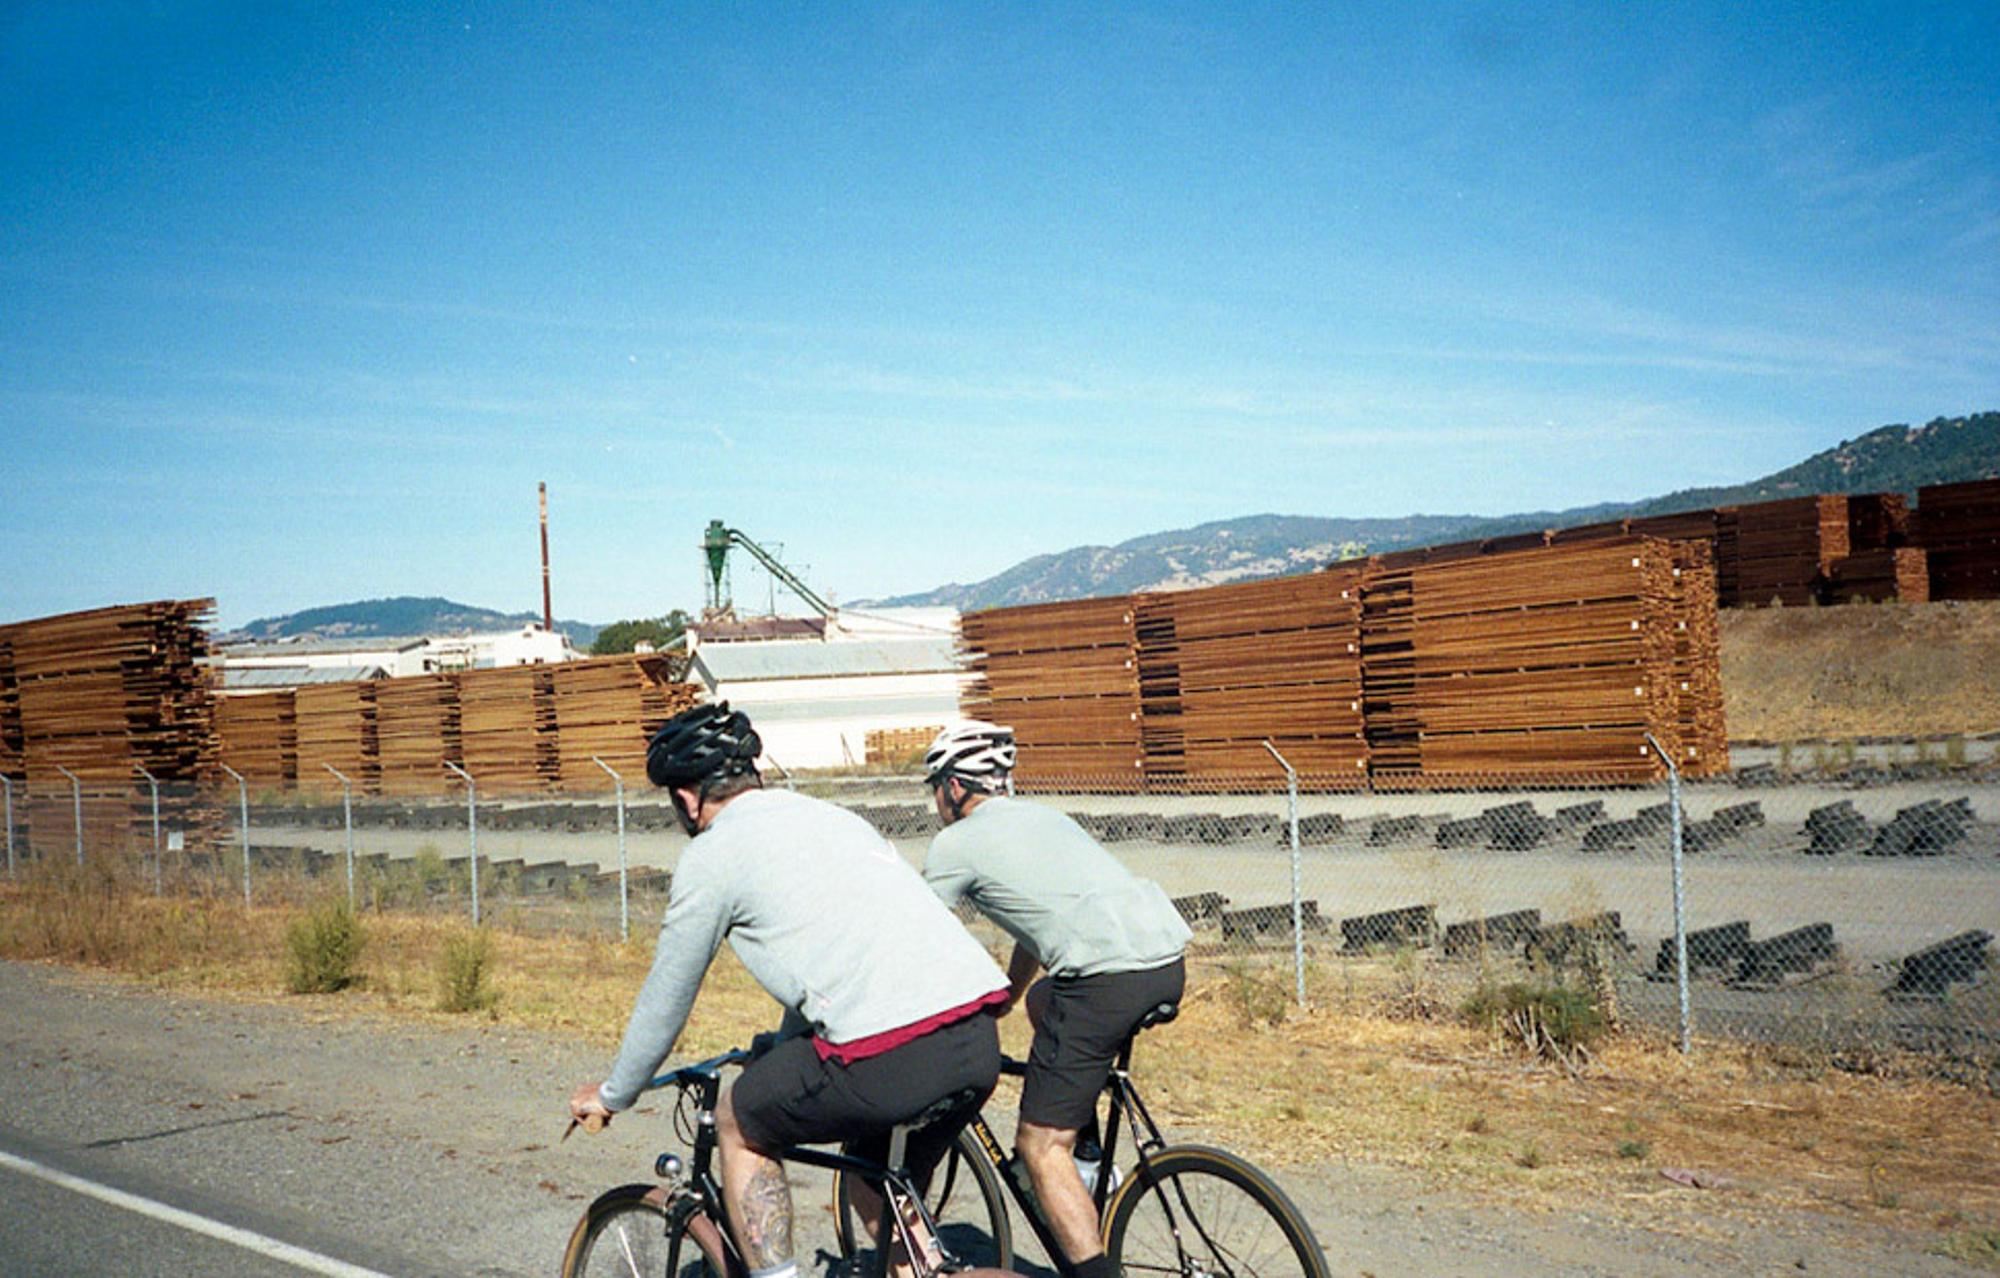 Riding past lumber yards.